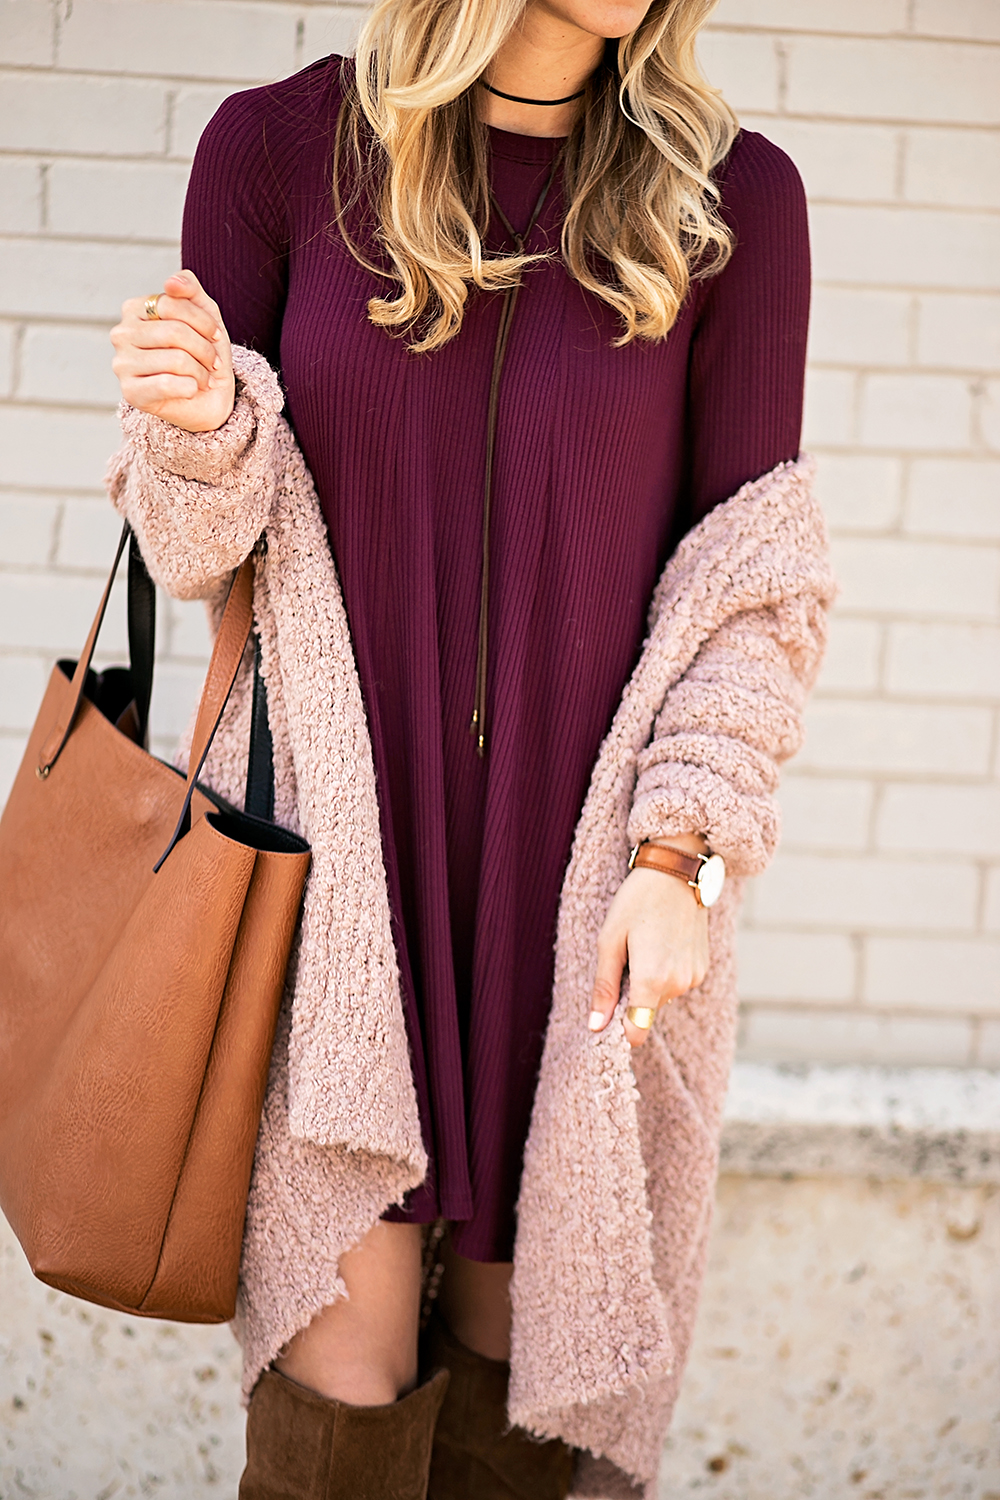 livvyland-blog-olivia-watson-cozy-fall-layers-dress-otk-boots-chunky-knit-cardigan-blush-pink-boho-outfit-1